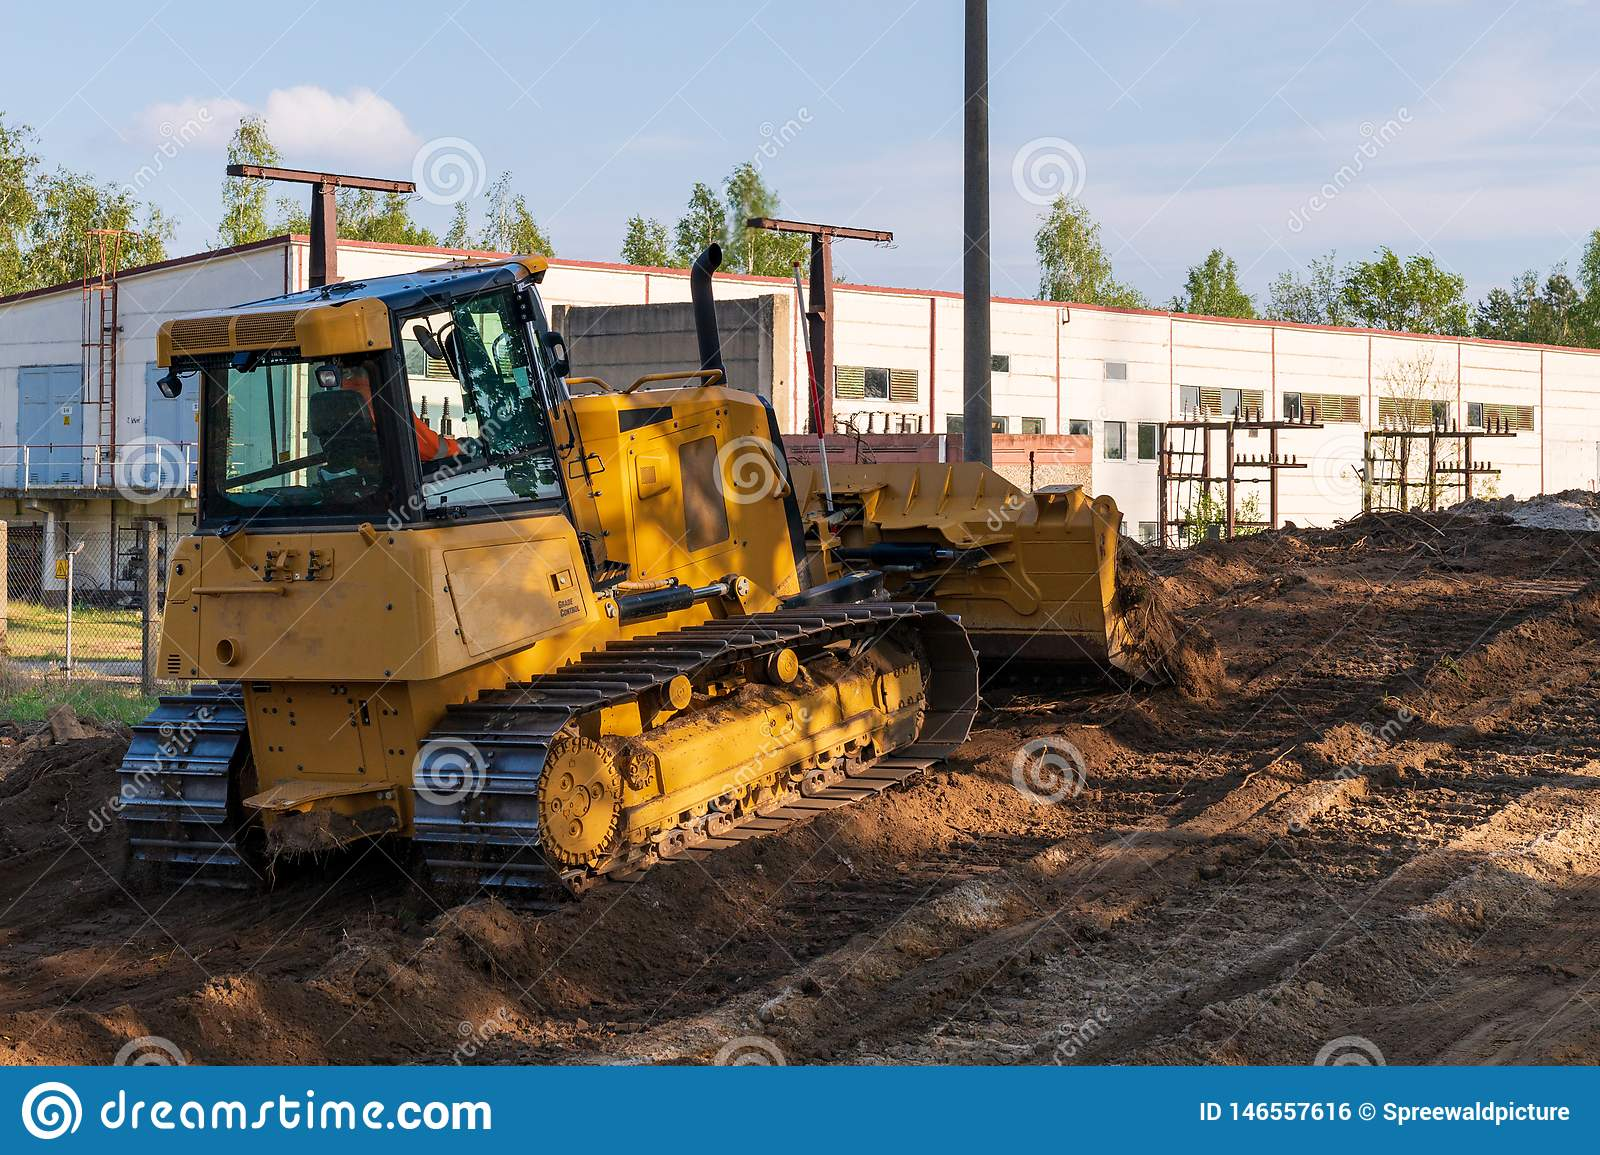 A bulldozer during clearing work